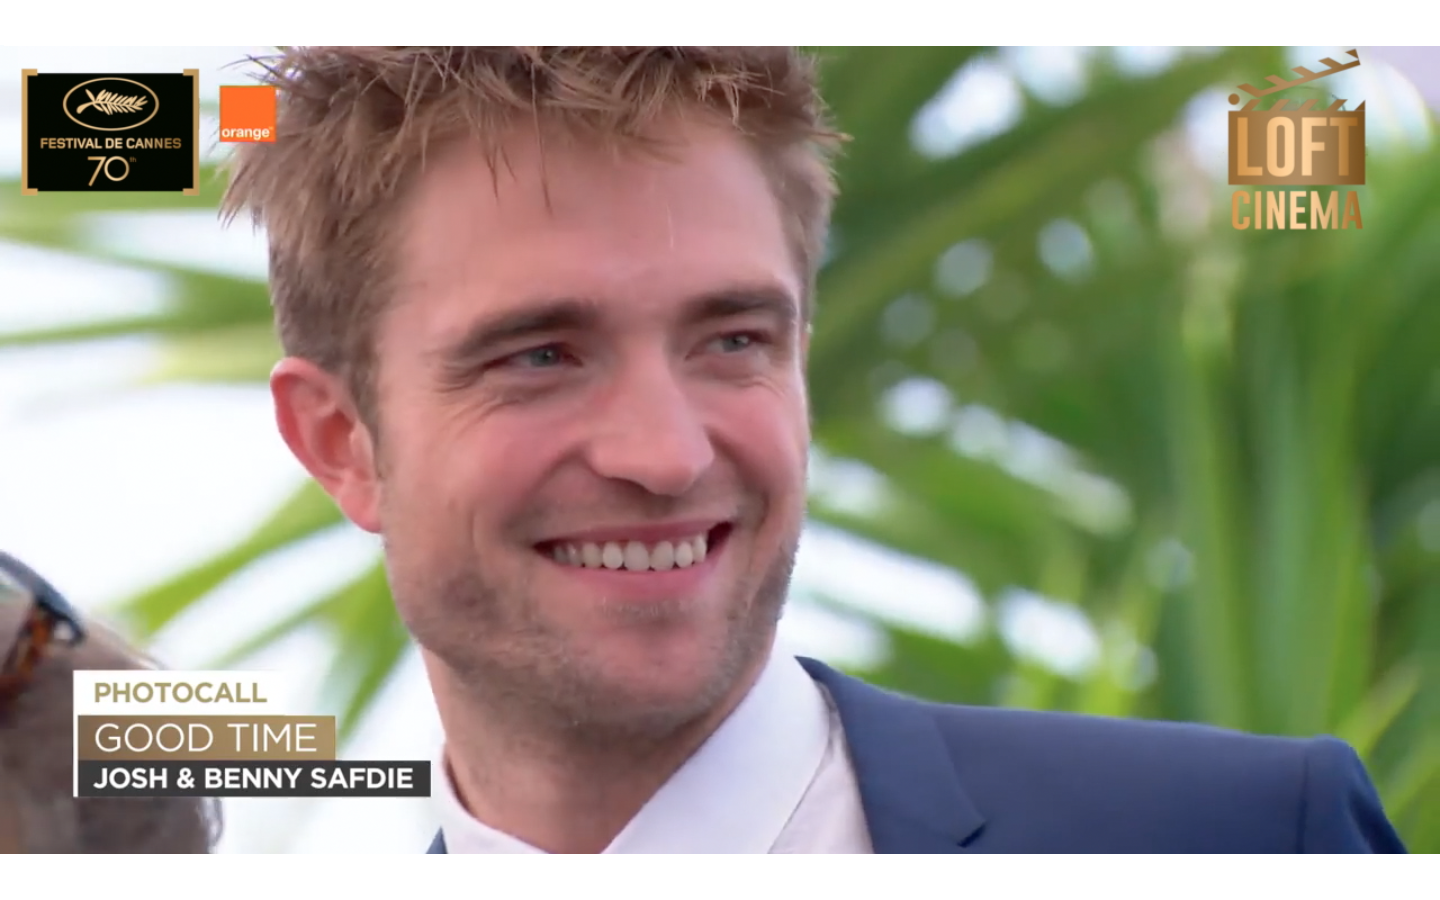 Robert Pattinson en el photocall de la película Good time